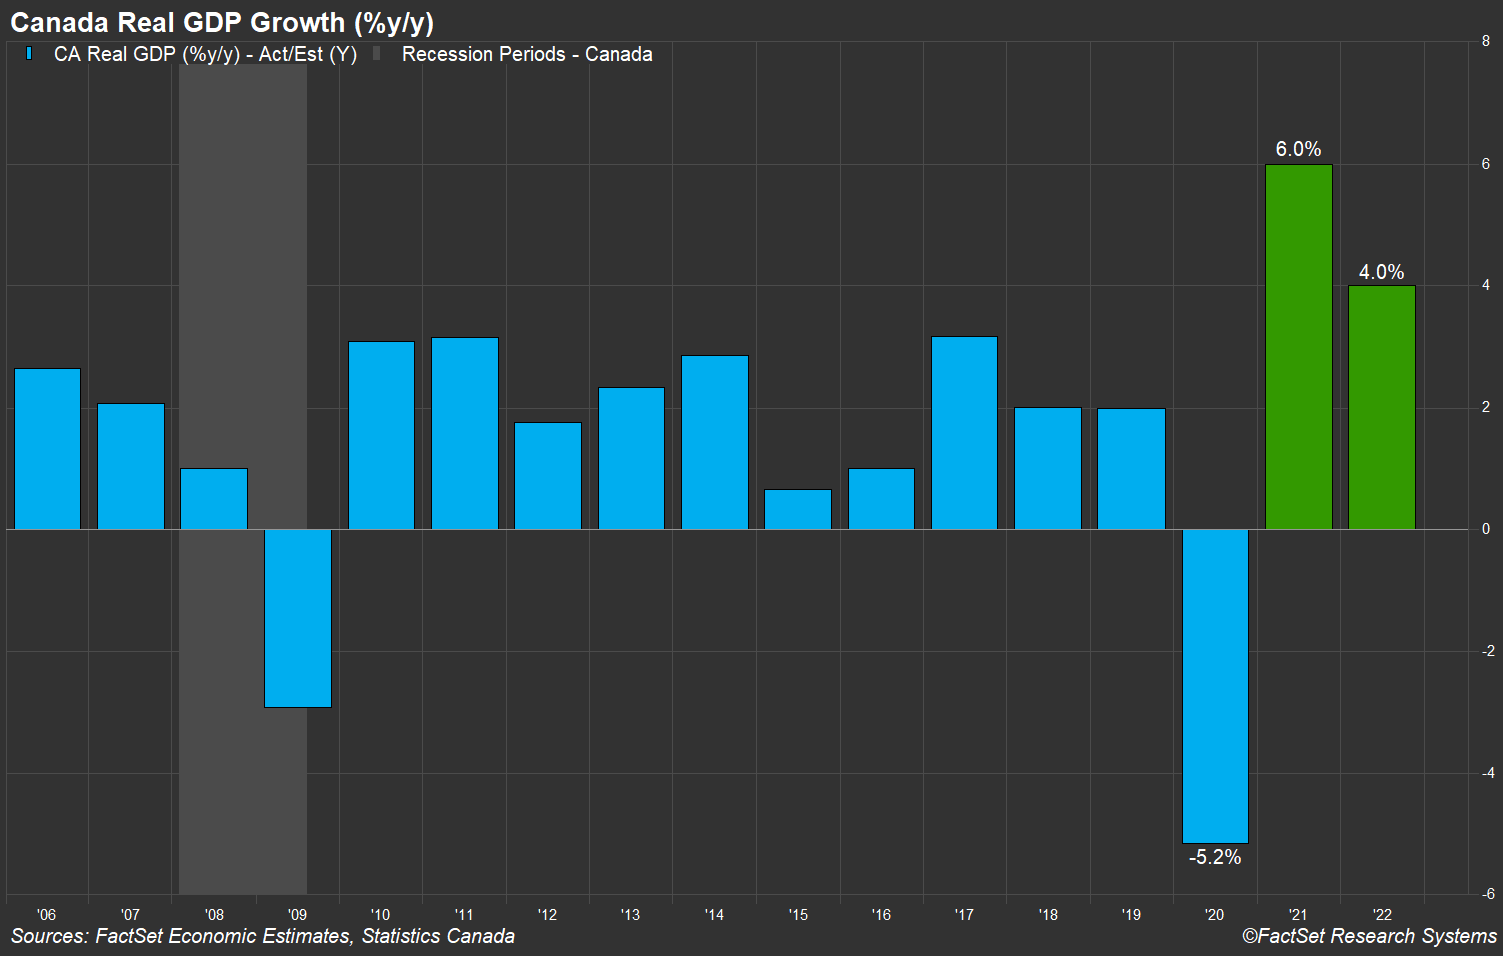 Canada Real GDP Growth